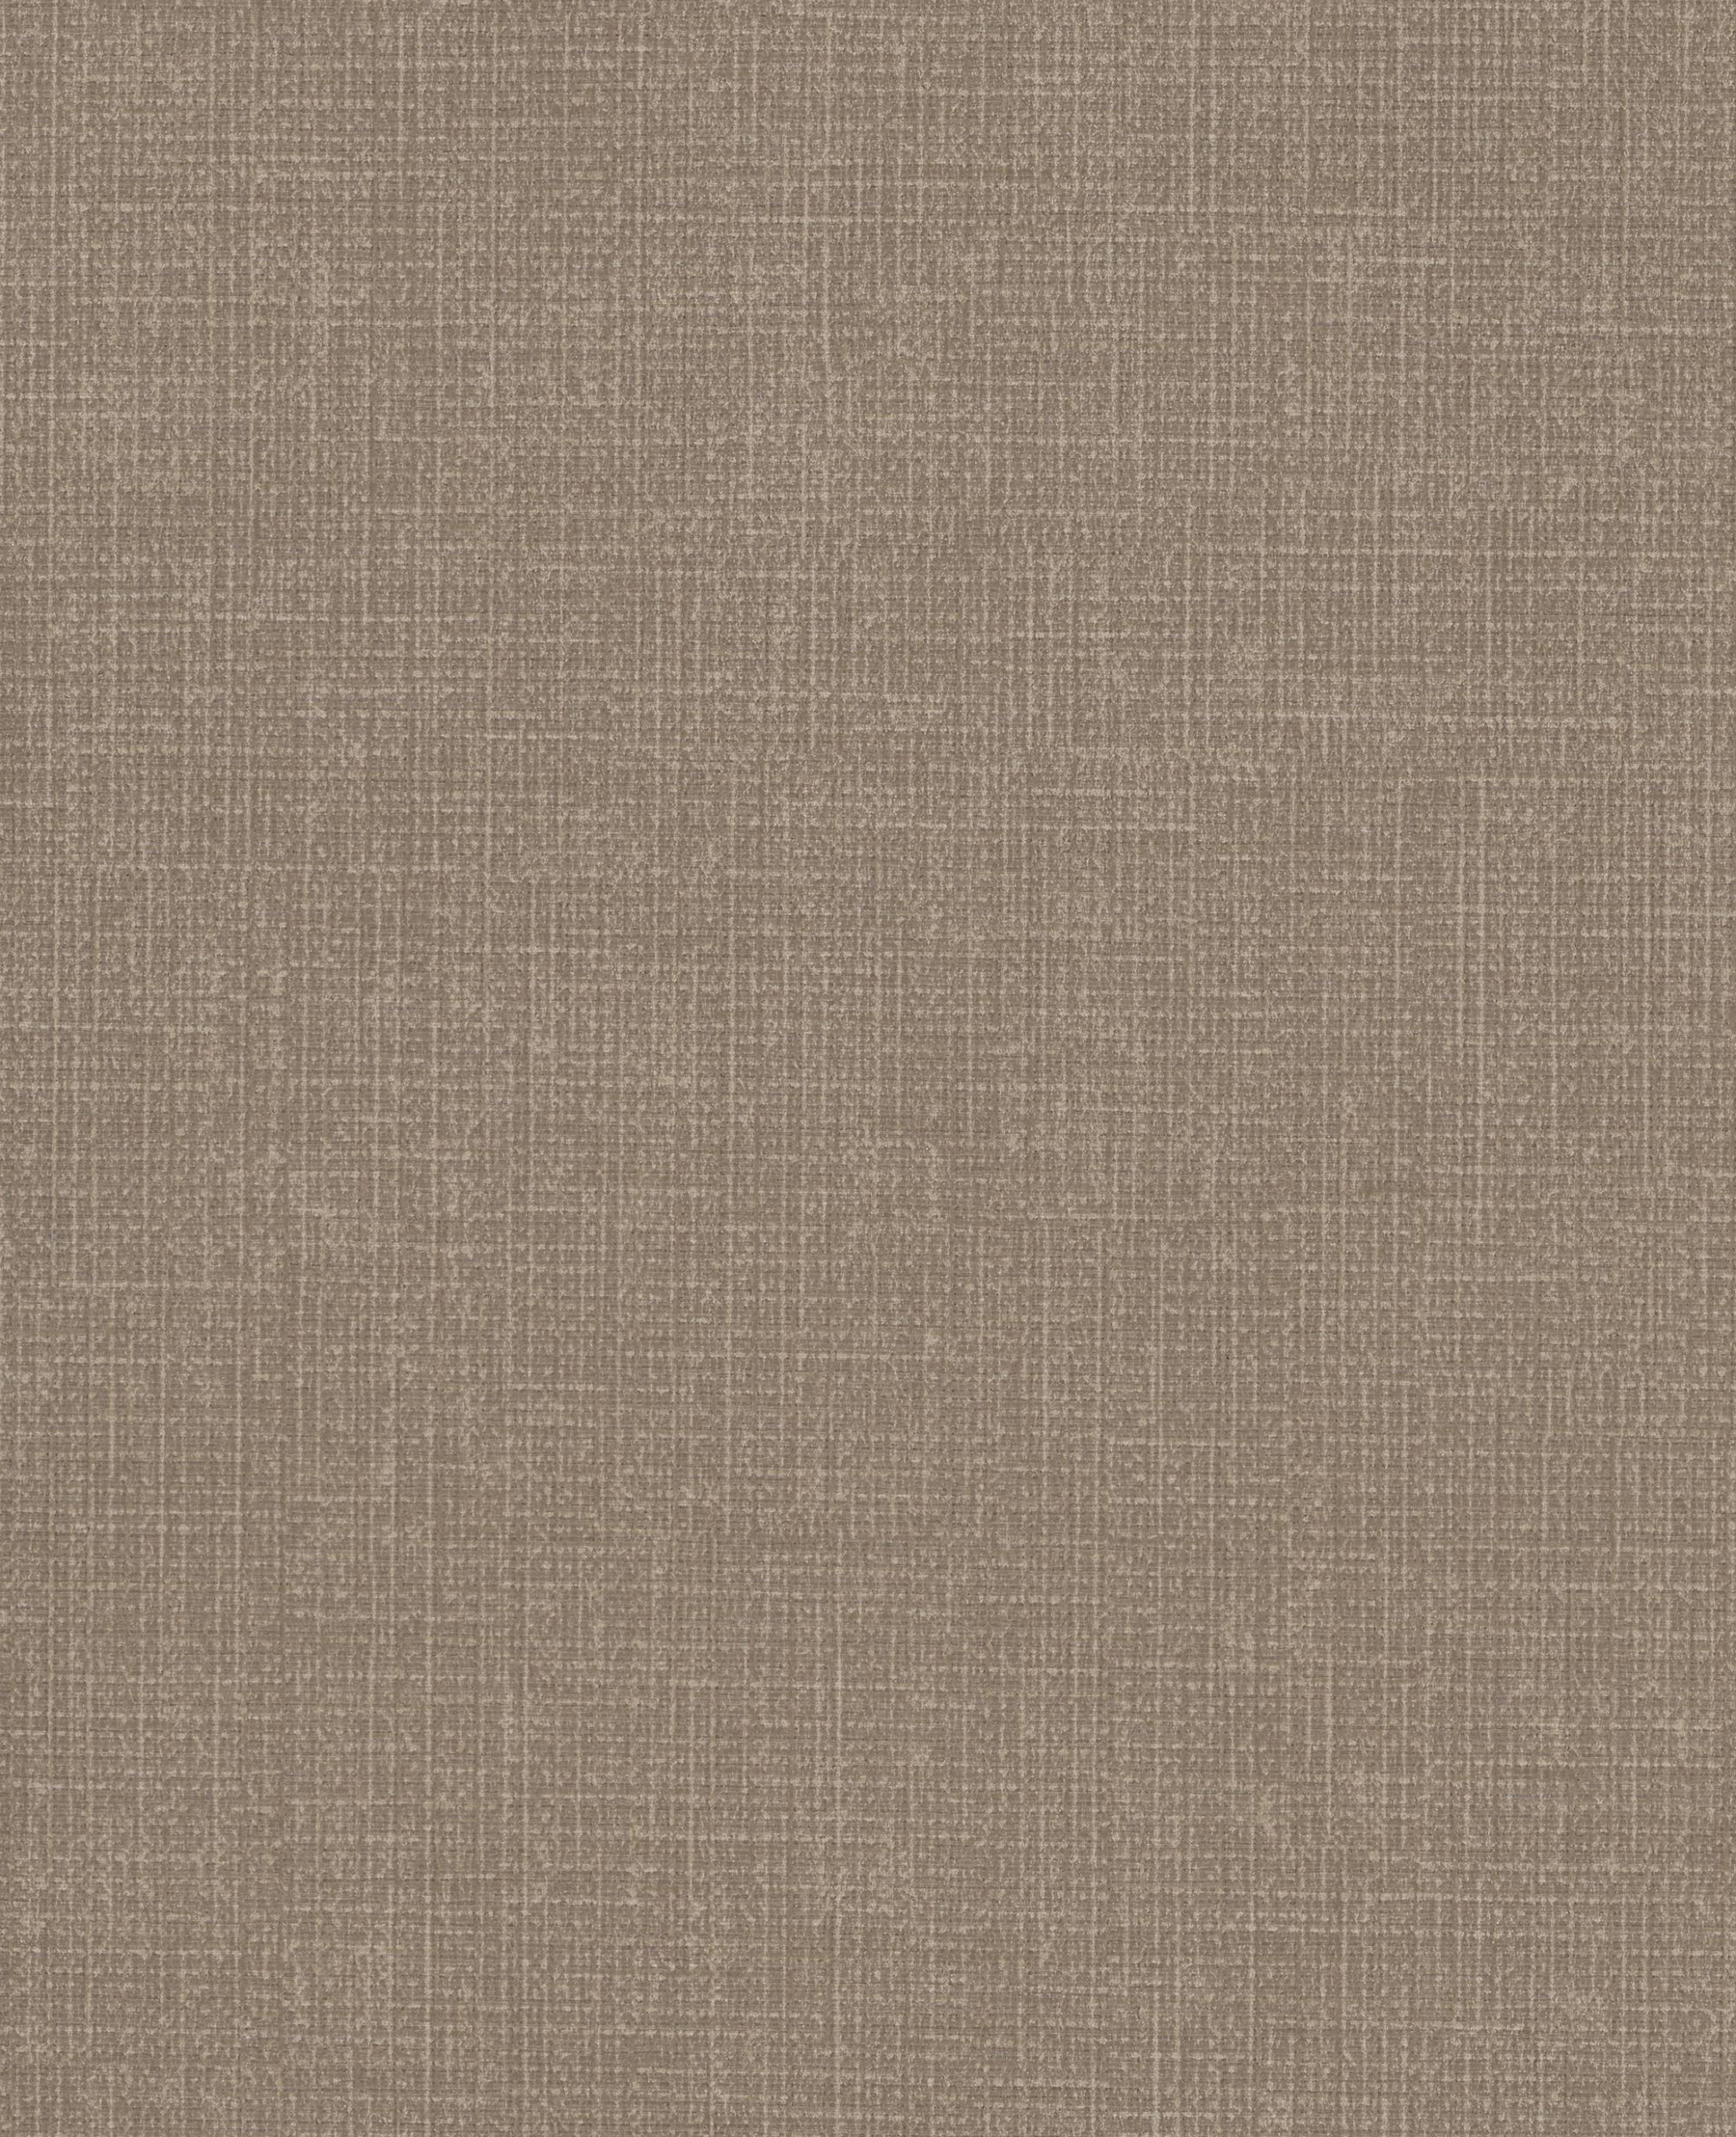 Picture of Arya Brown Fabric Texture Wallpaper